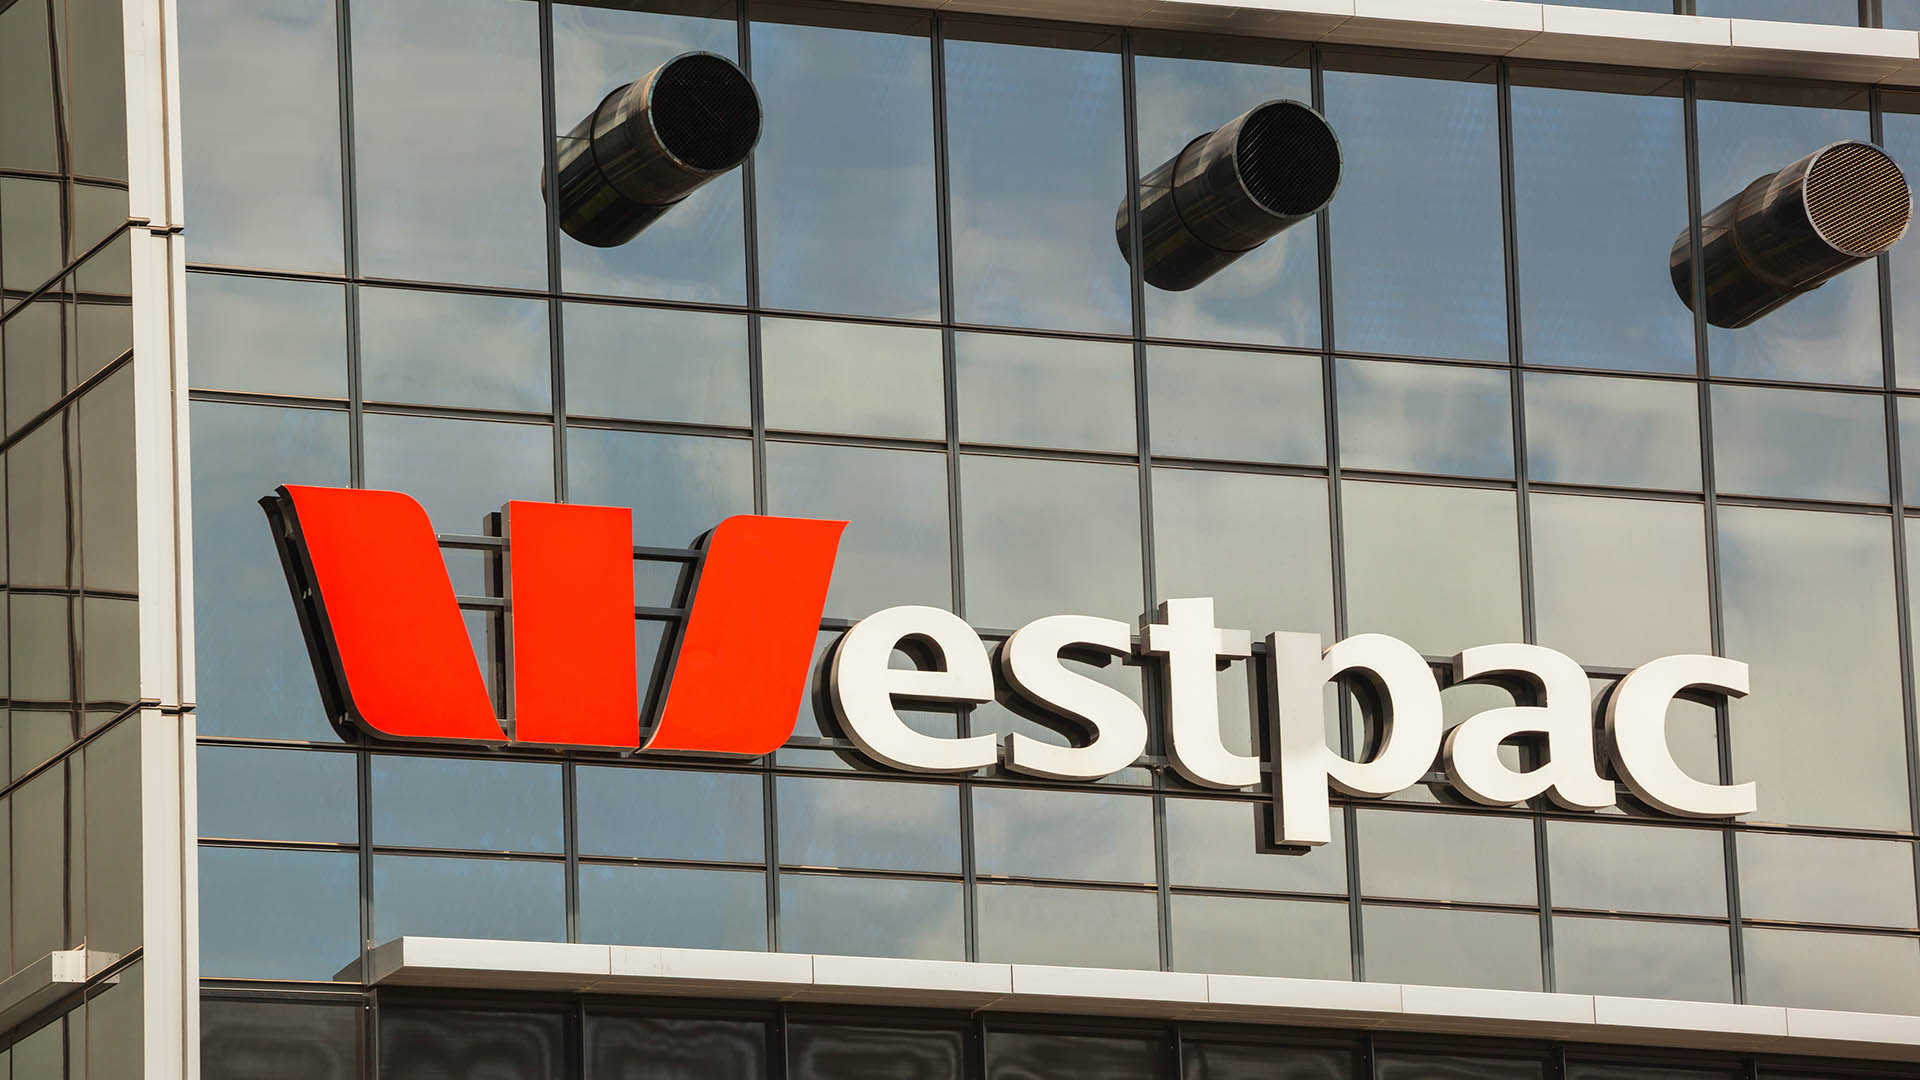 Westpac (ASX:WBC) appoints new COO